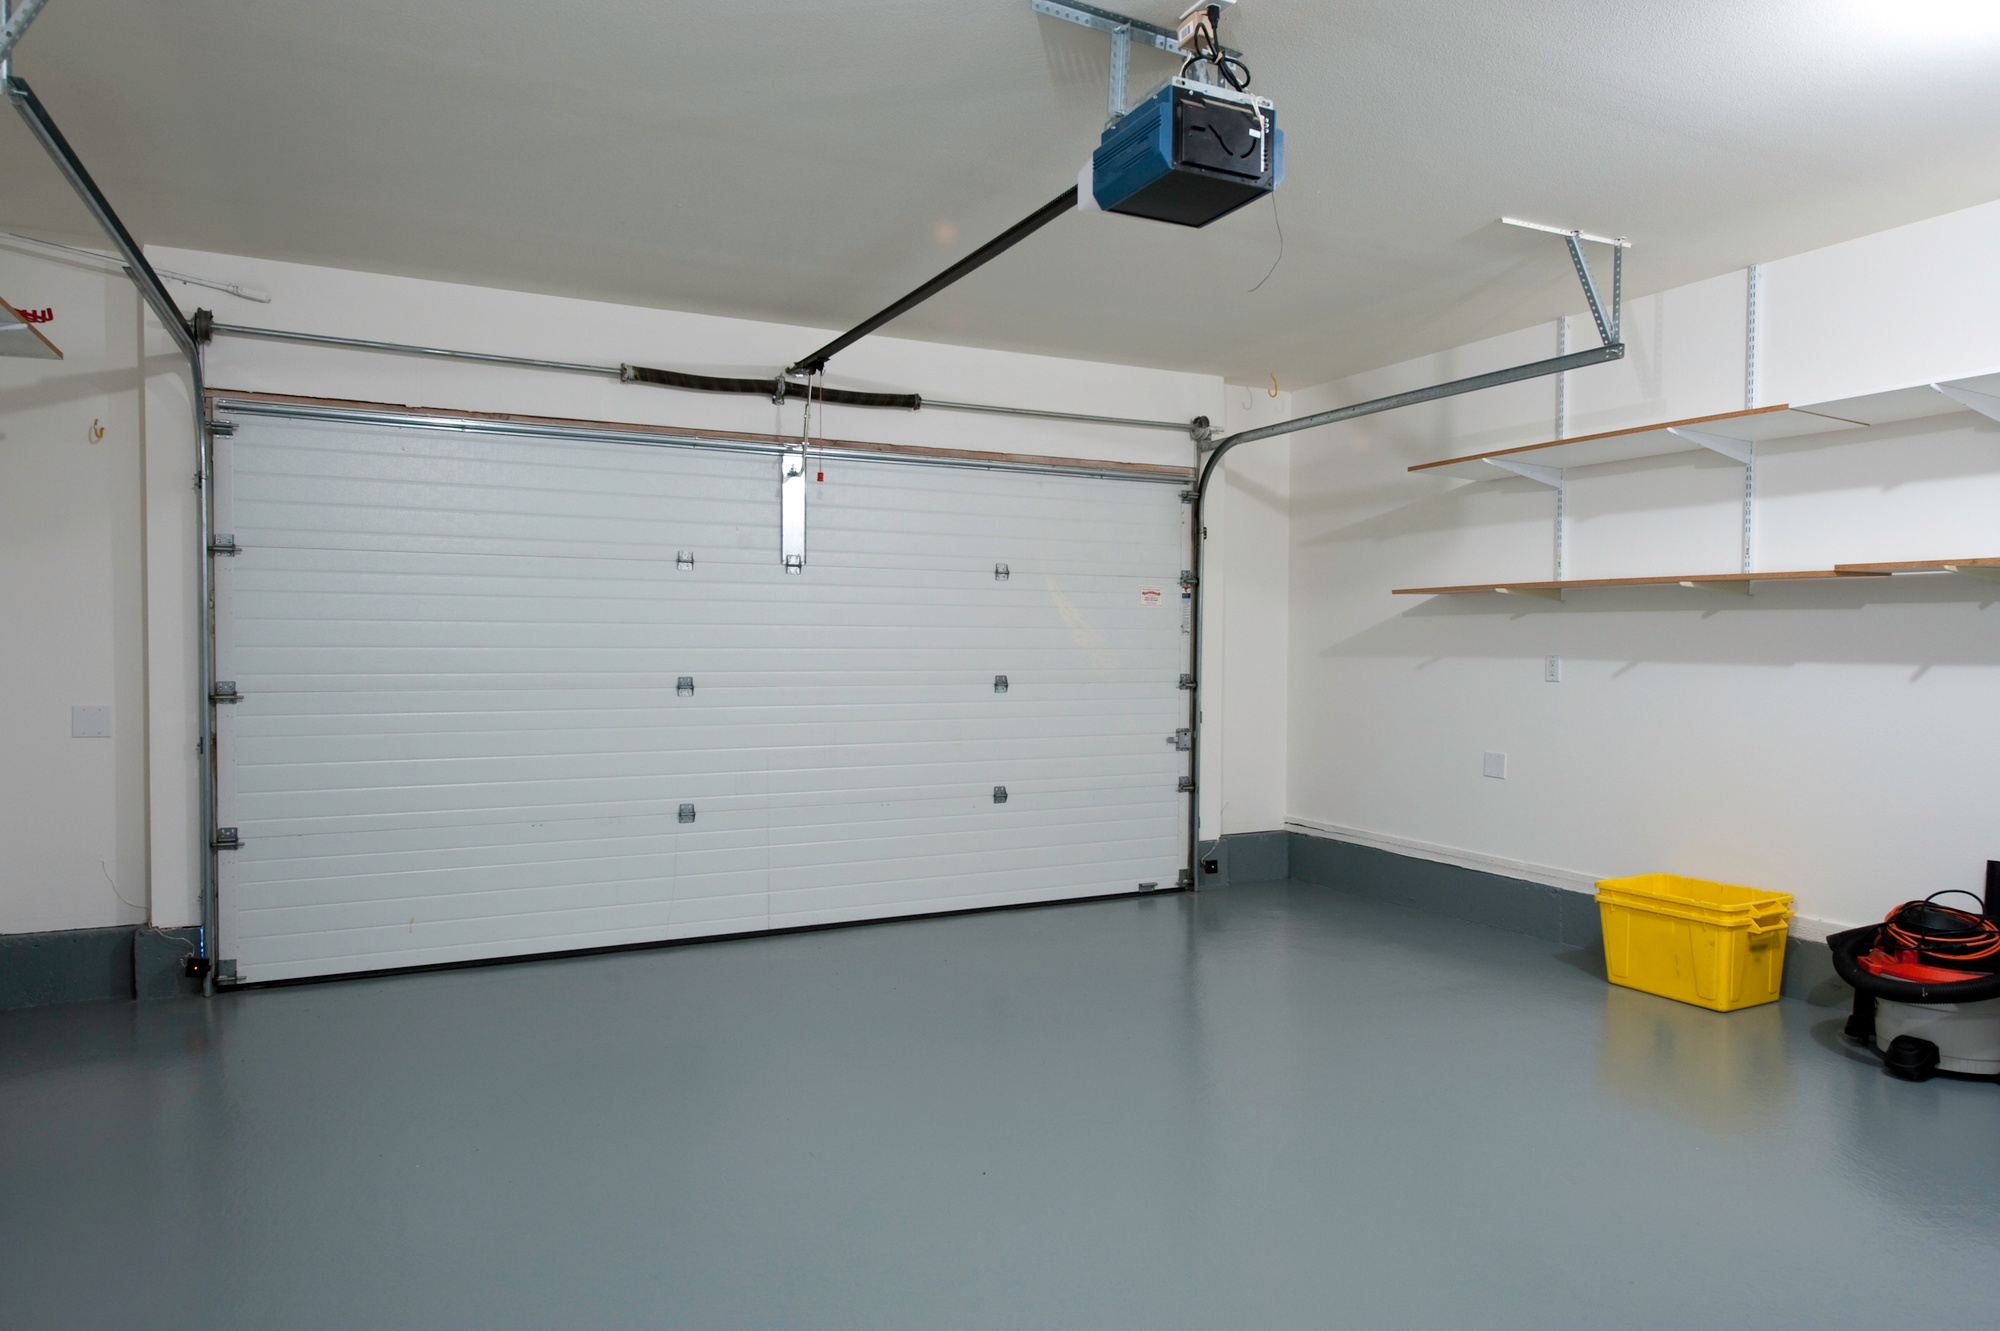 how to open a garage door manuallyHow to Manage Your Garage Door During a Power Outage